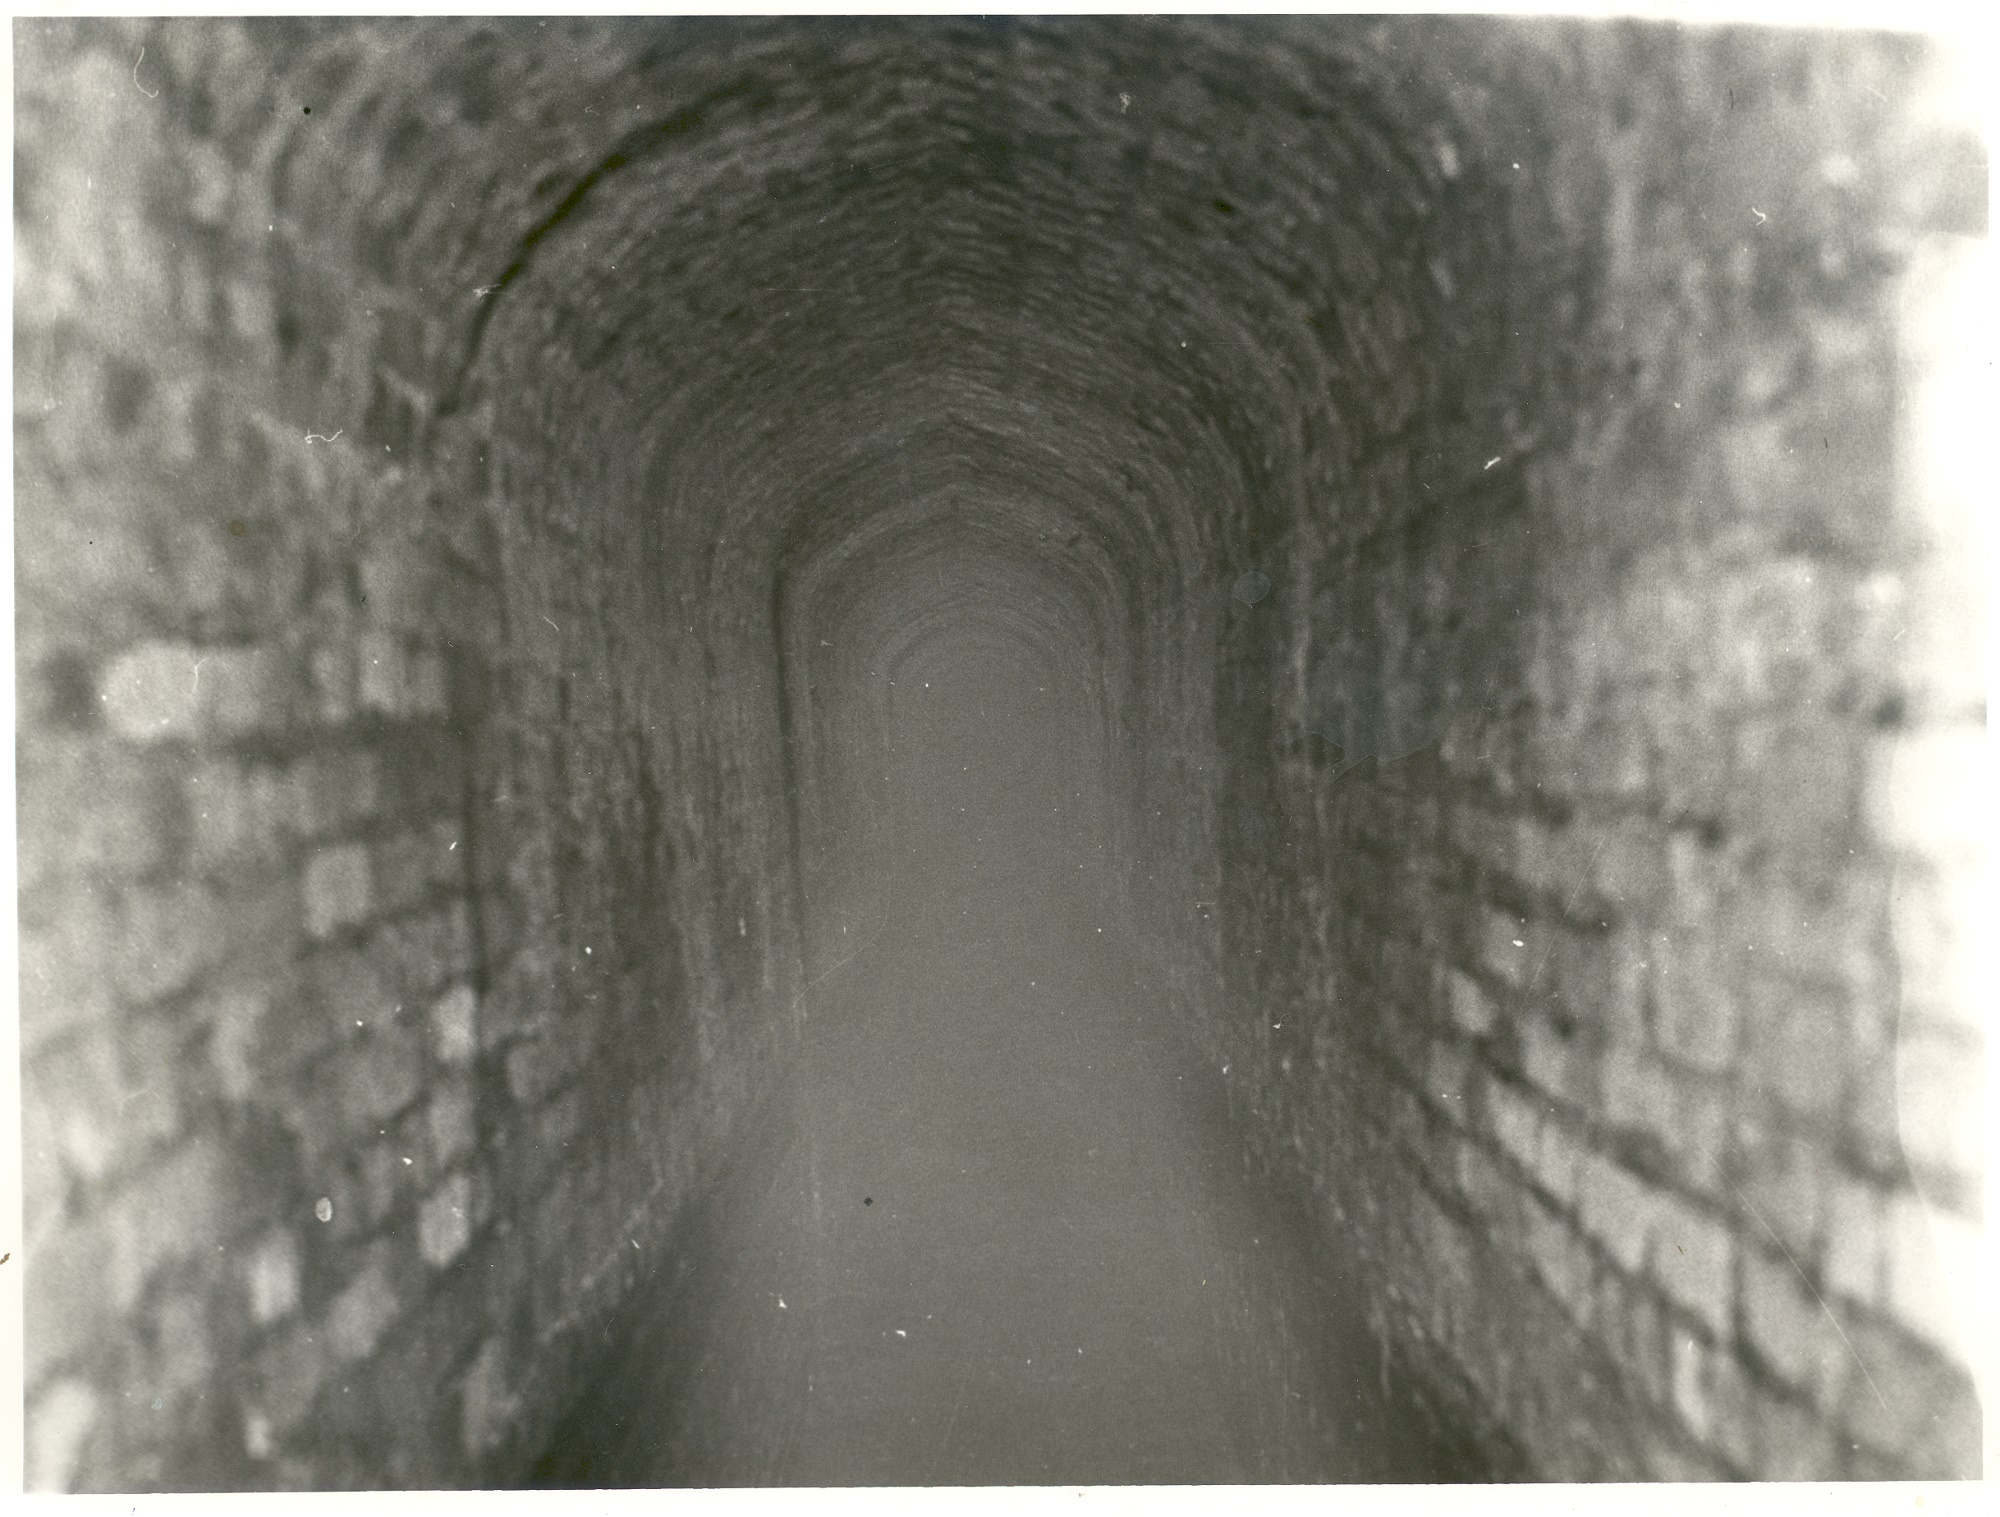 1920s black and white photograph of the interior of the Great Culvert which was inserted into the moat of Oatlands Palace.